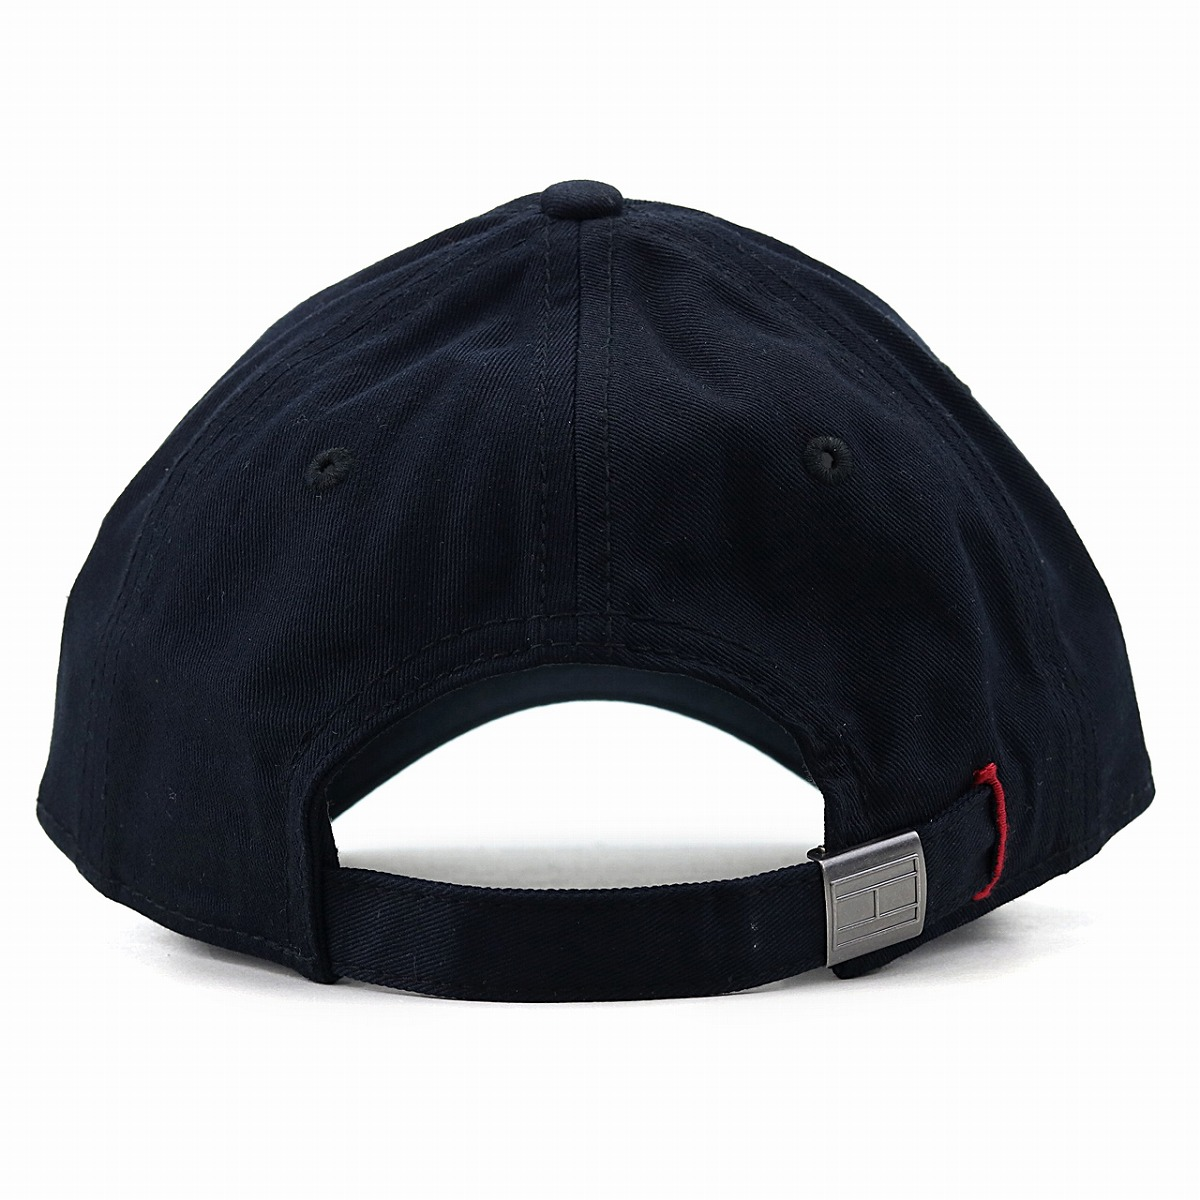 3c11a218 ... Cap Tommy Hilfiger men cap Tommy cotton casual sports baseball cap  Lady's hat dark blue navy ...